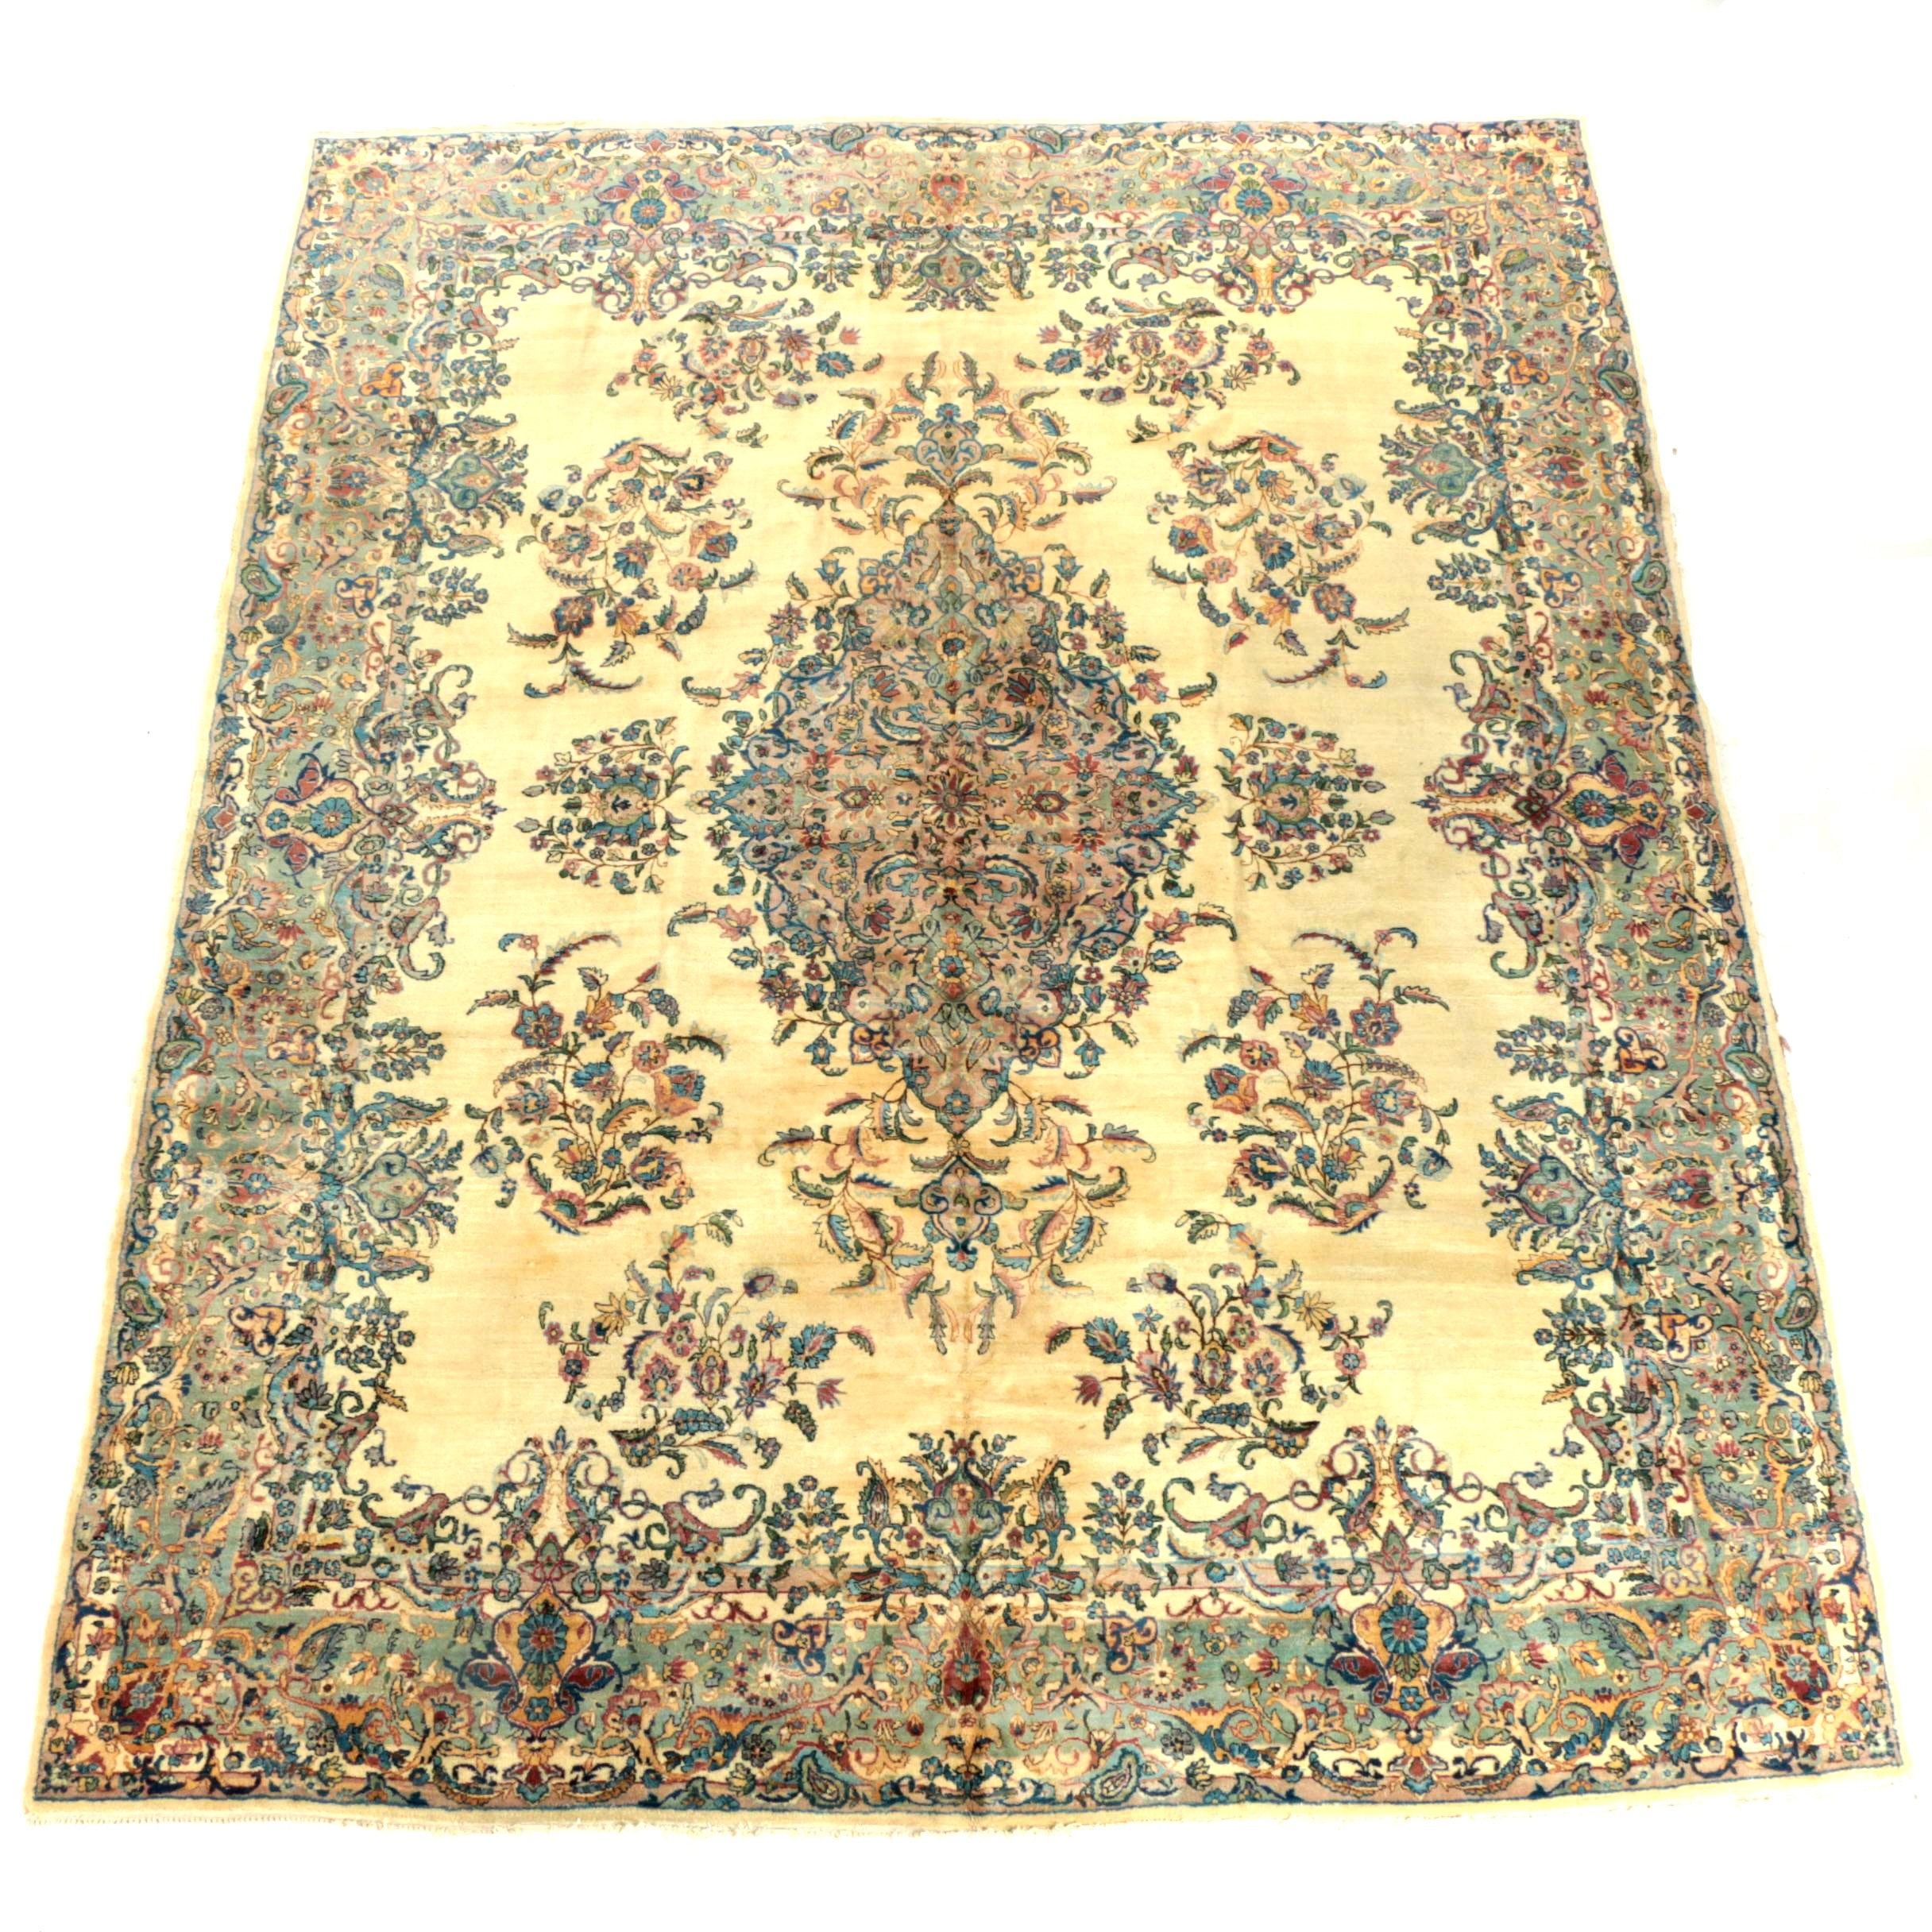 Semi-Antique Hand-Knotted Persian Kerman Wool Room Sized Rug